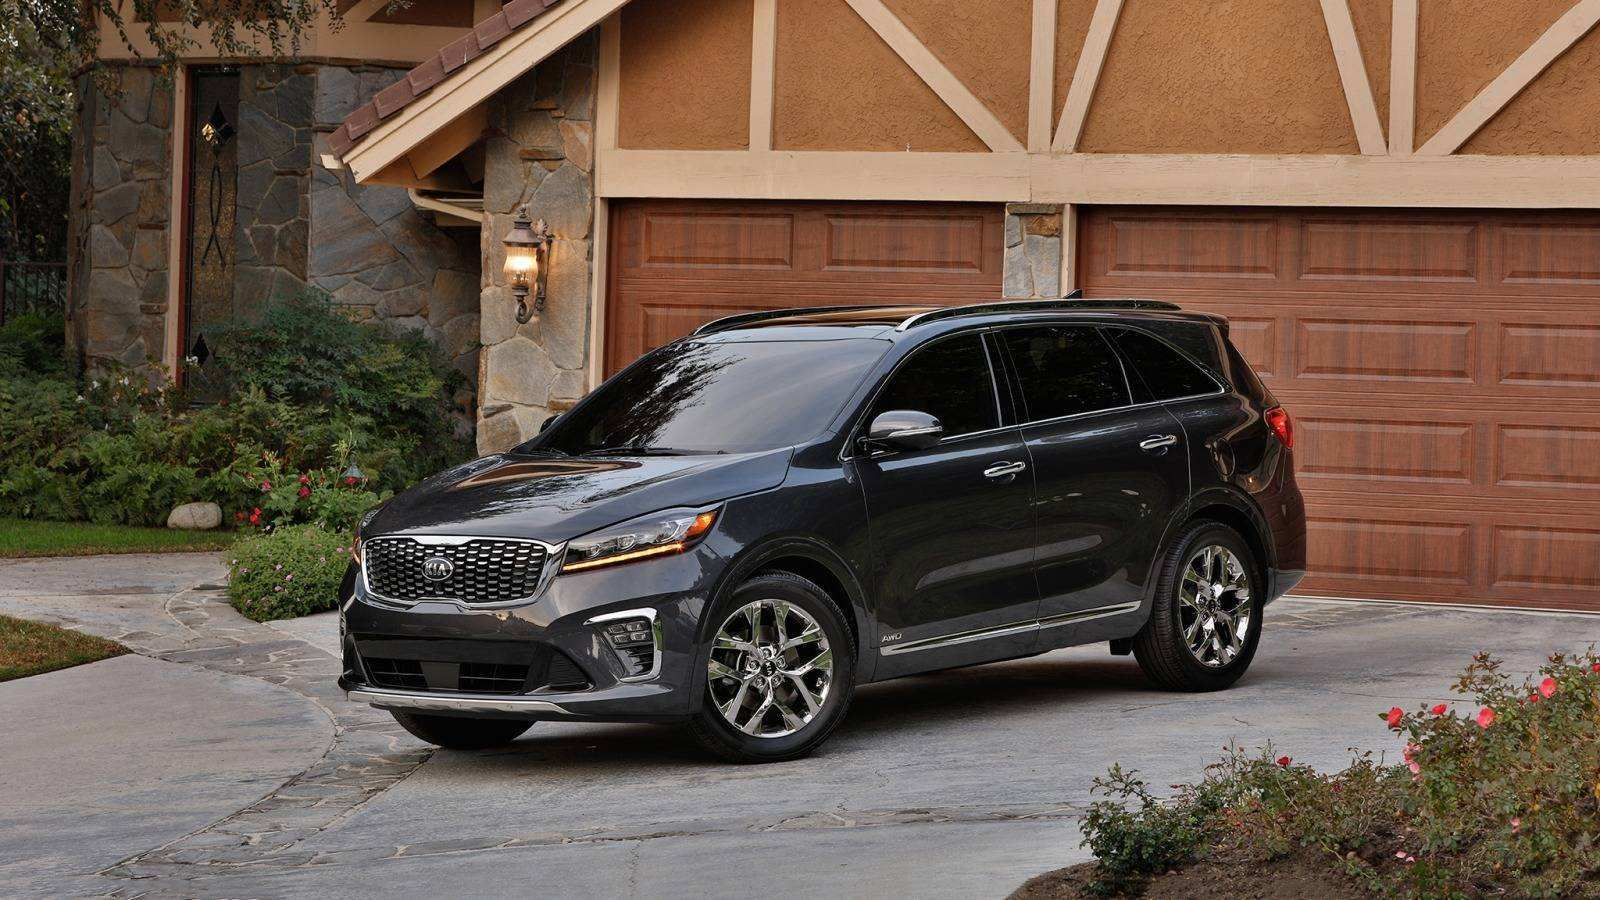 33 Concept of 2019 Kia Sorento Price Reviews by 2019 Kia Sorento Price